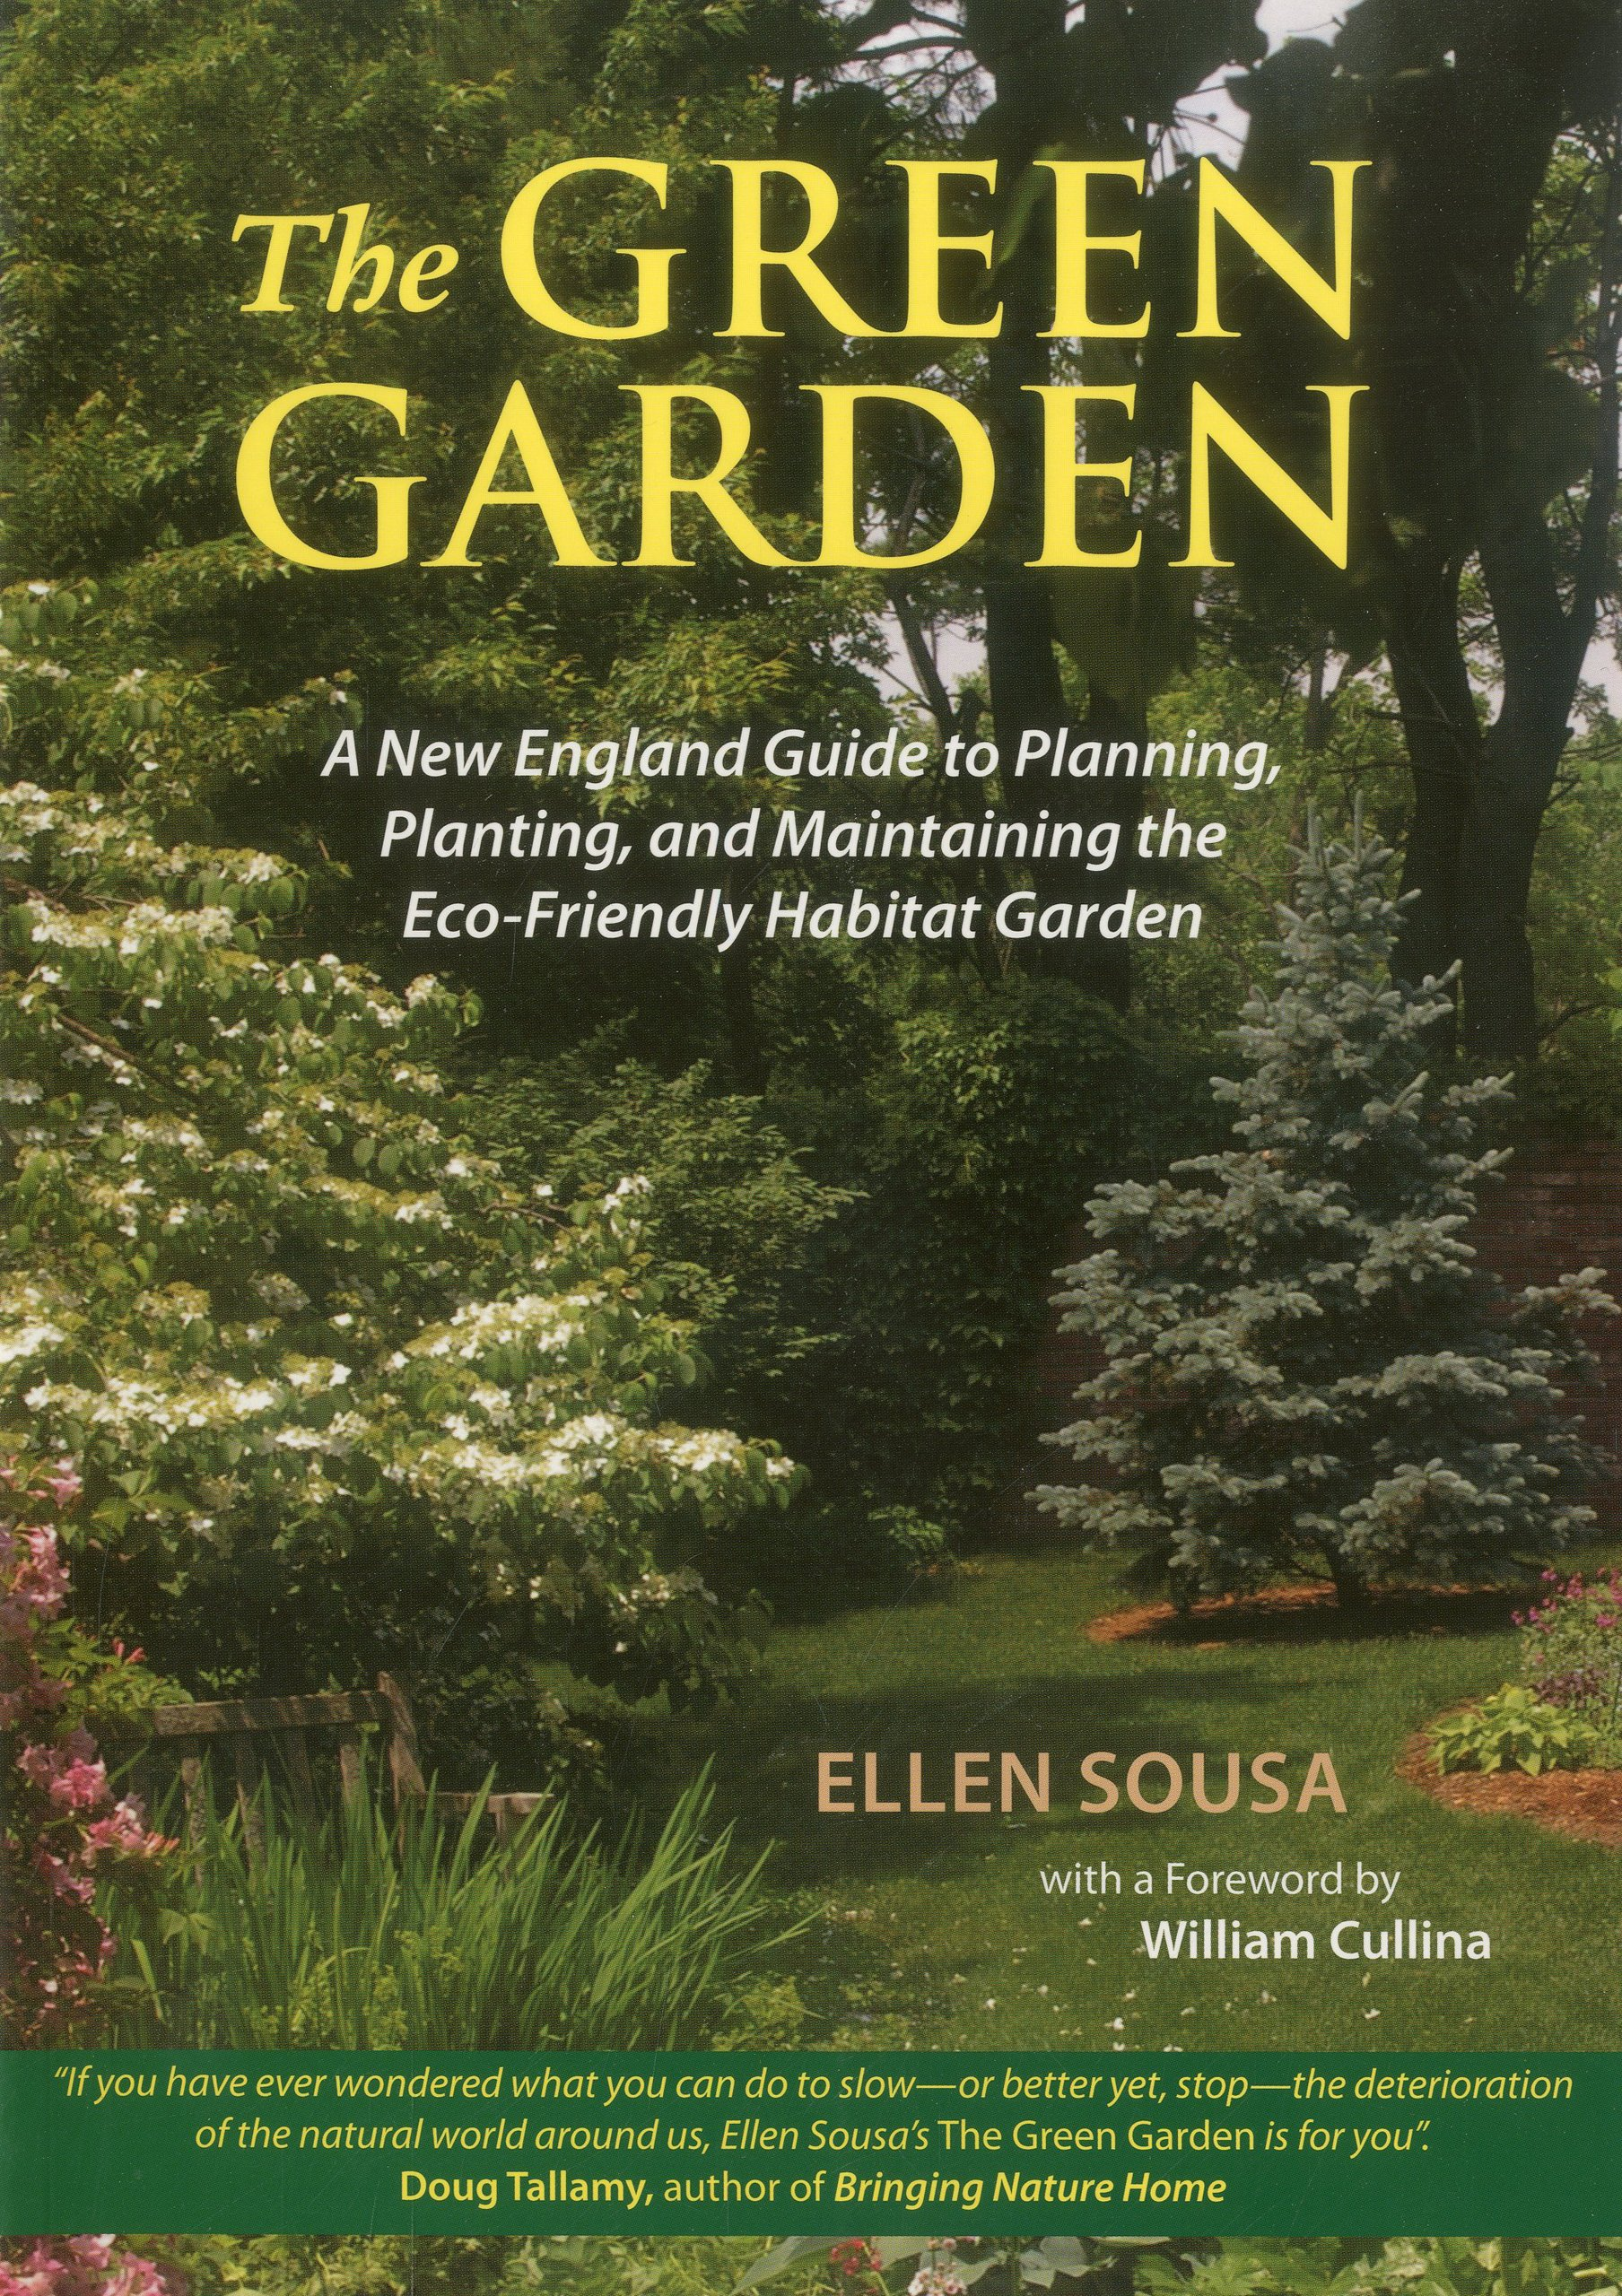 The Green Garden: A New England Guide To Planting And Maintaining The  Eco Friendly Habitat Garden: Ellen Sousa, William Cullina: 9781593730918:  Amazon.com: ...